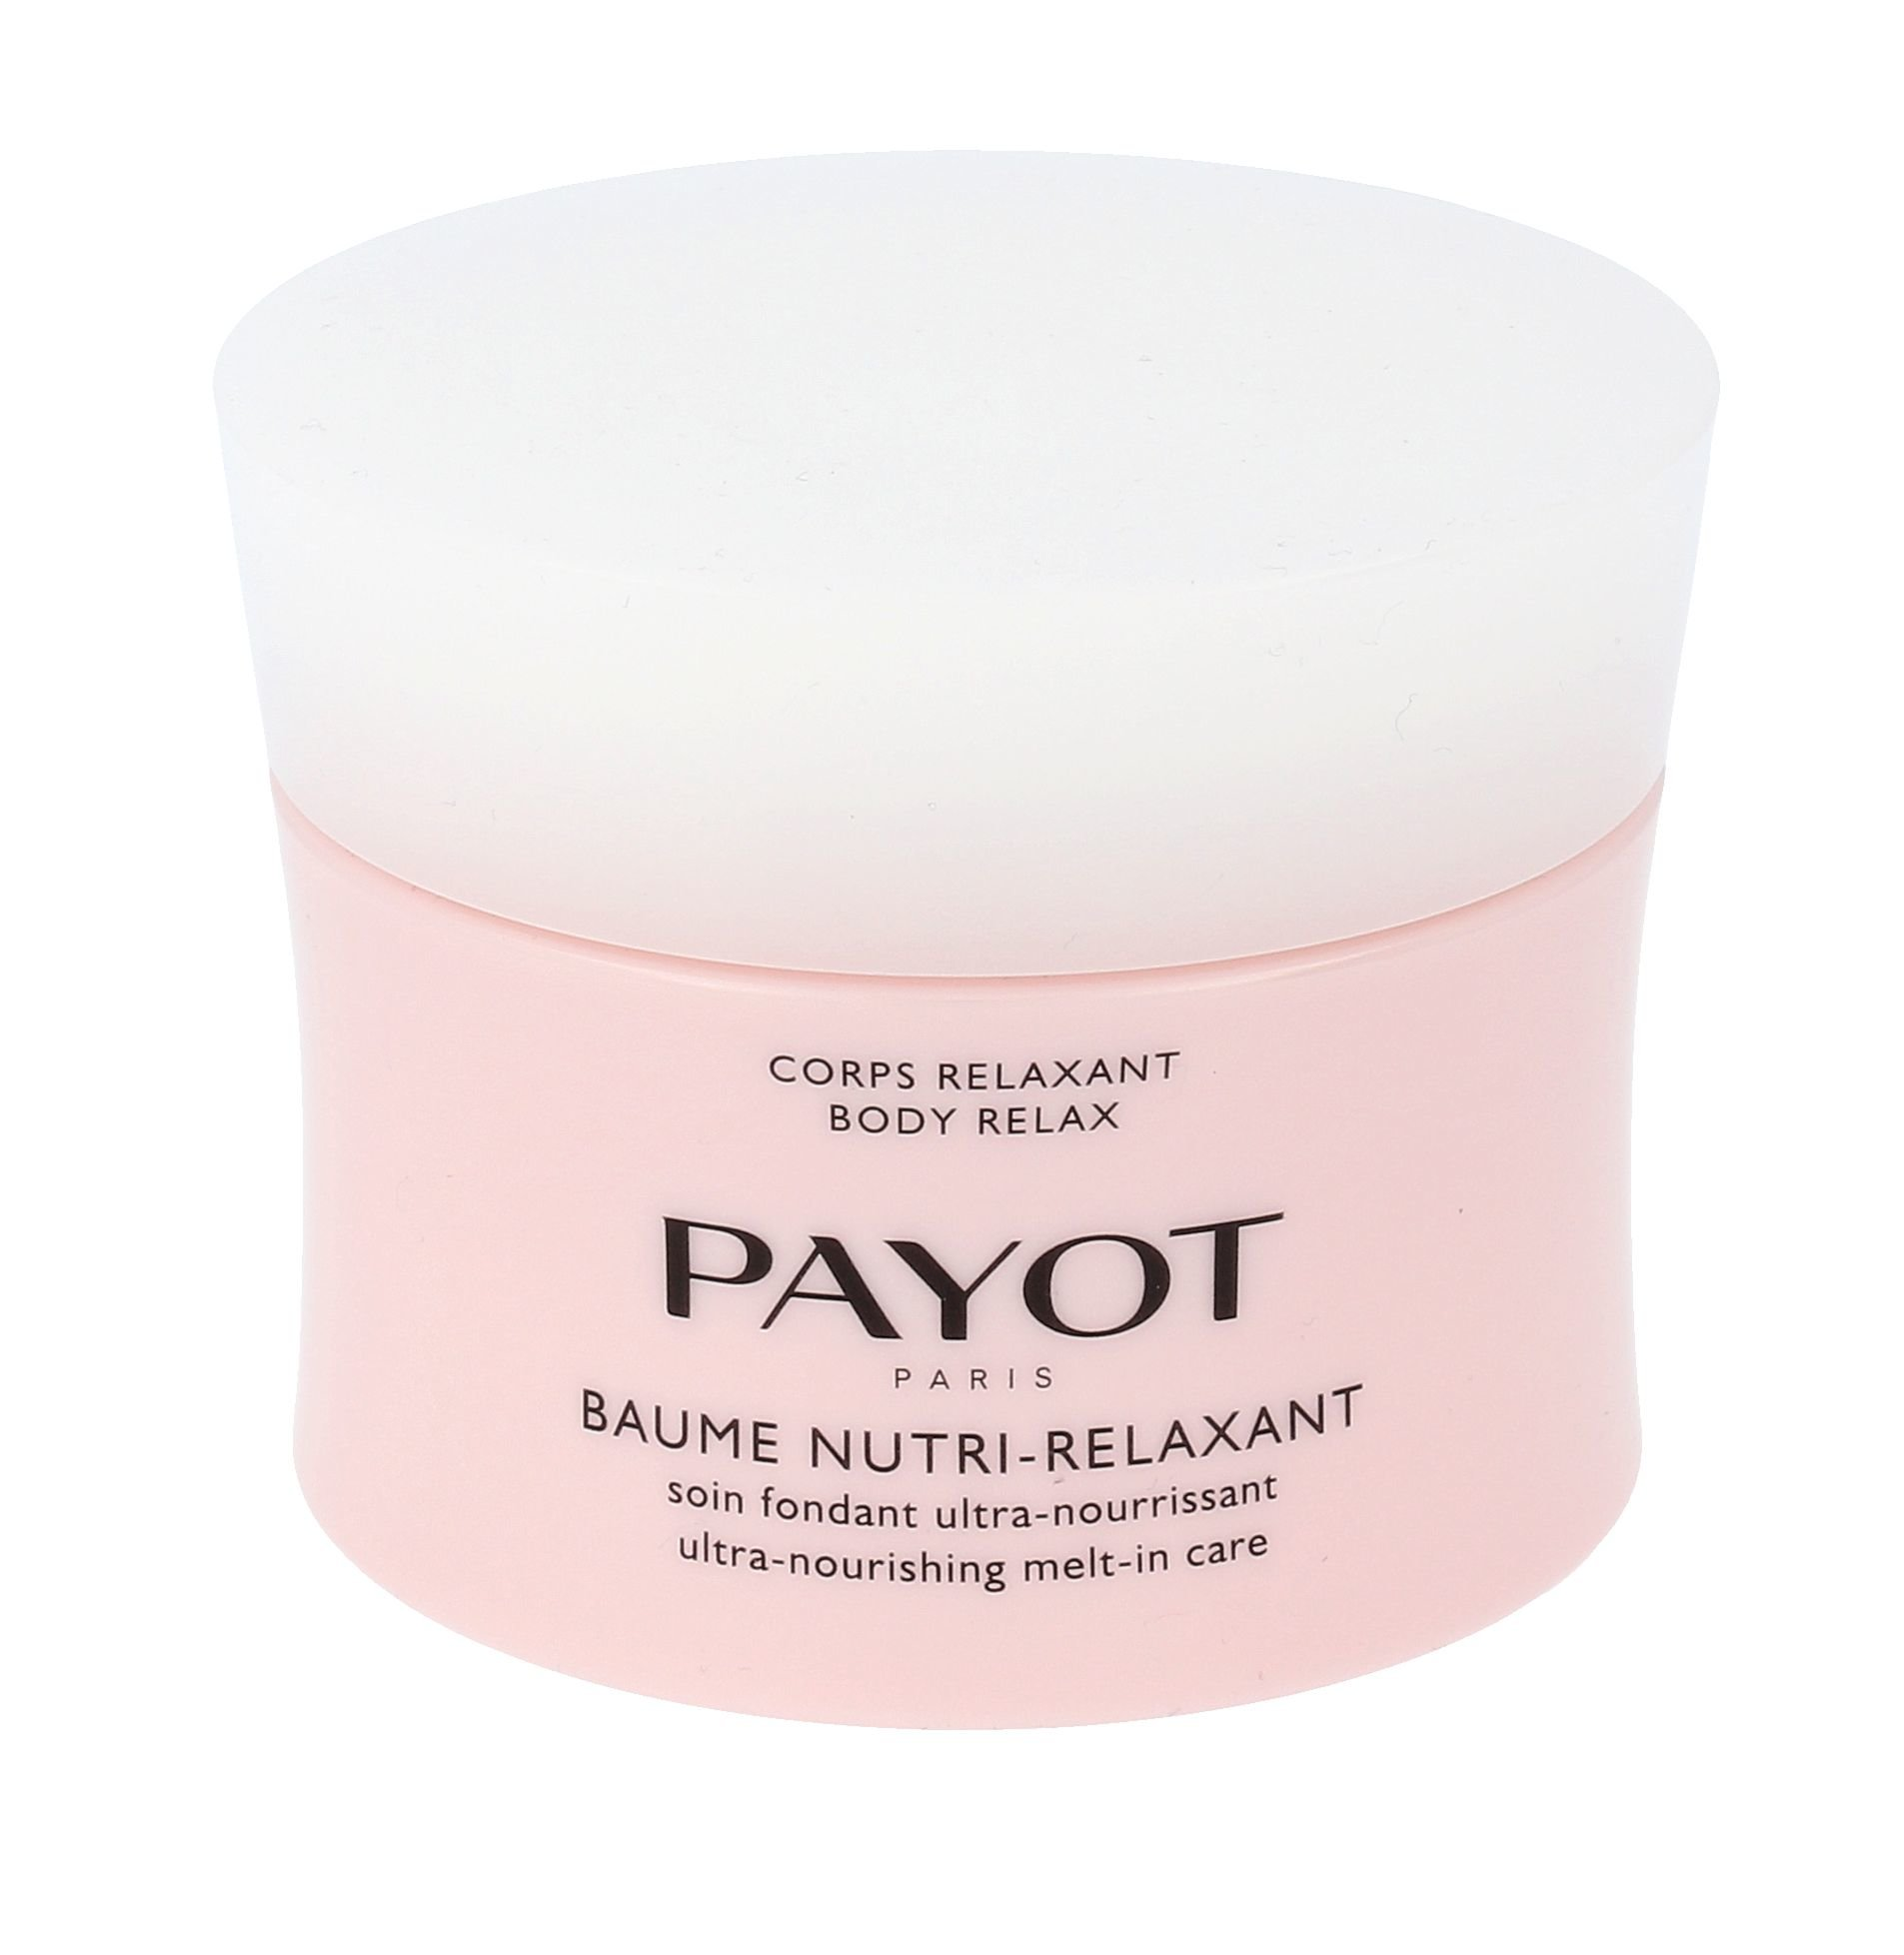 PAYOT Corps Relaxant Body Balm 200ml  Ultra-Nourishing Melt-In Care